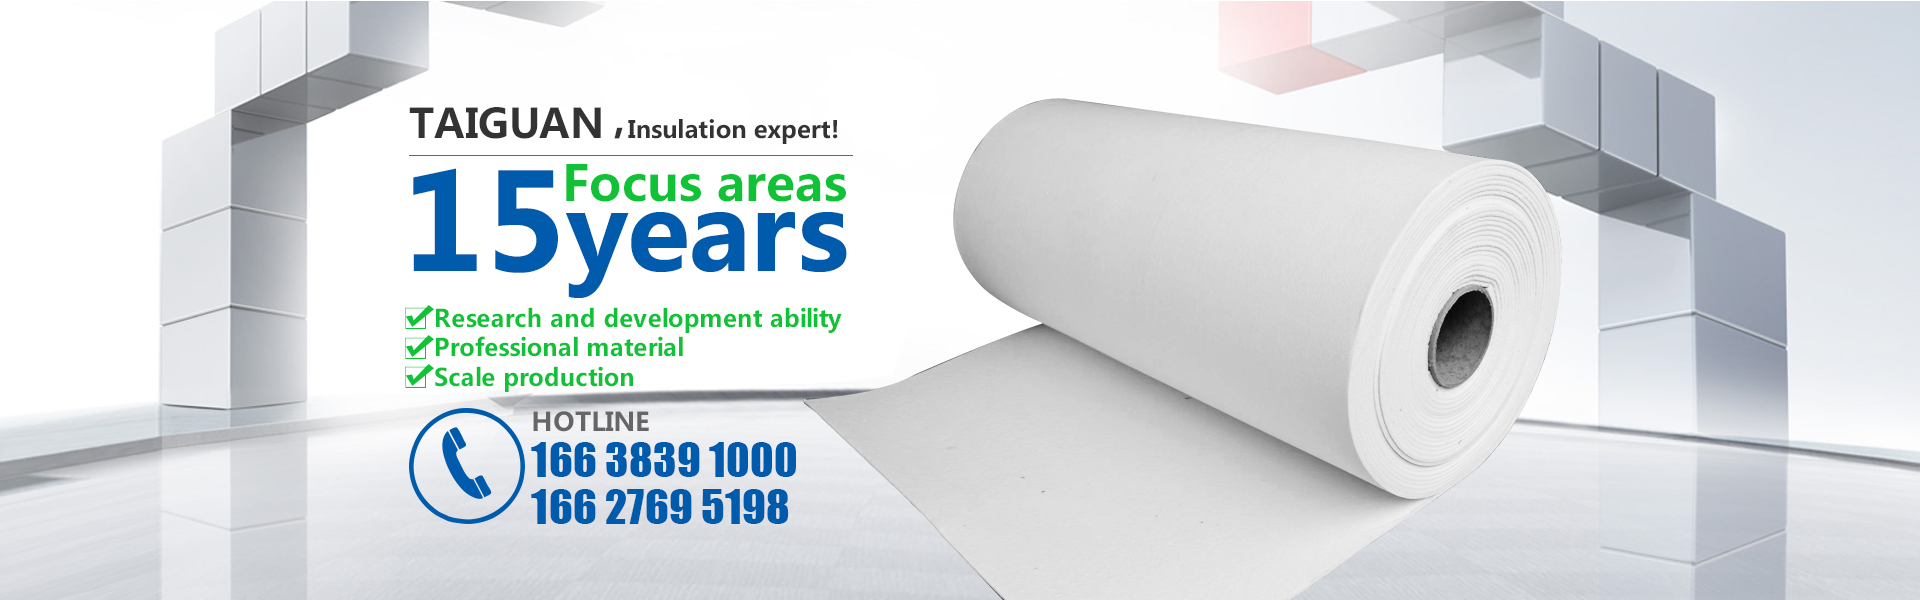 Henan Taiguan Thermal Insulation Material Co., Ltd.